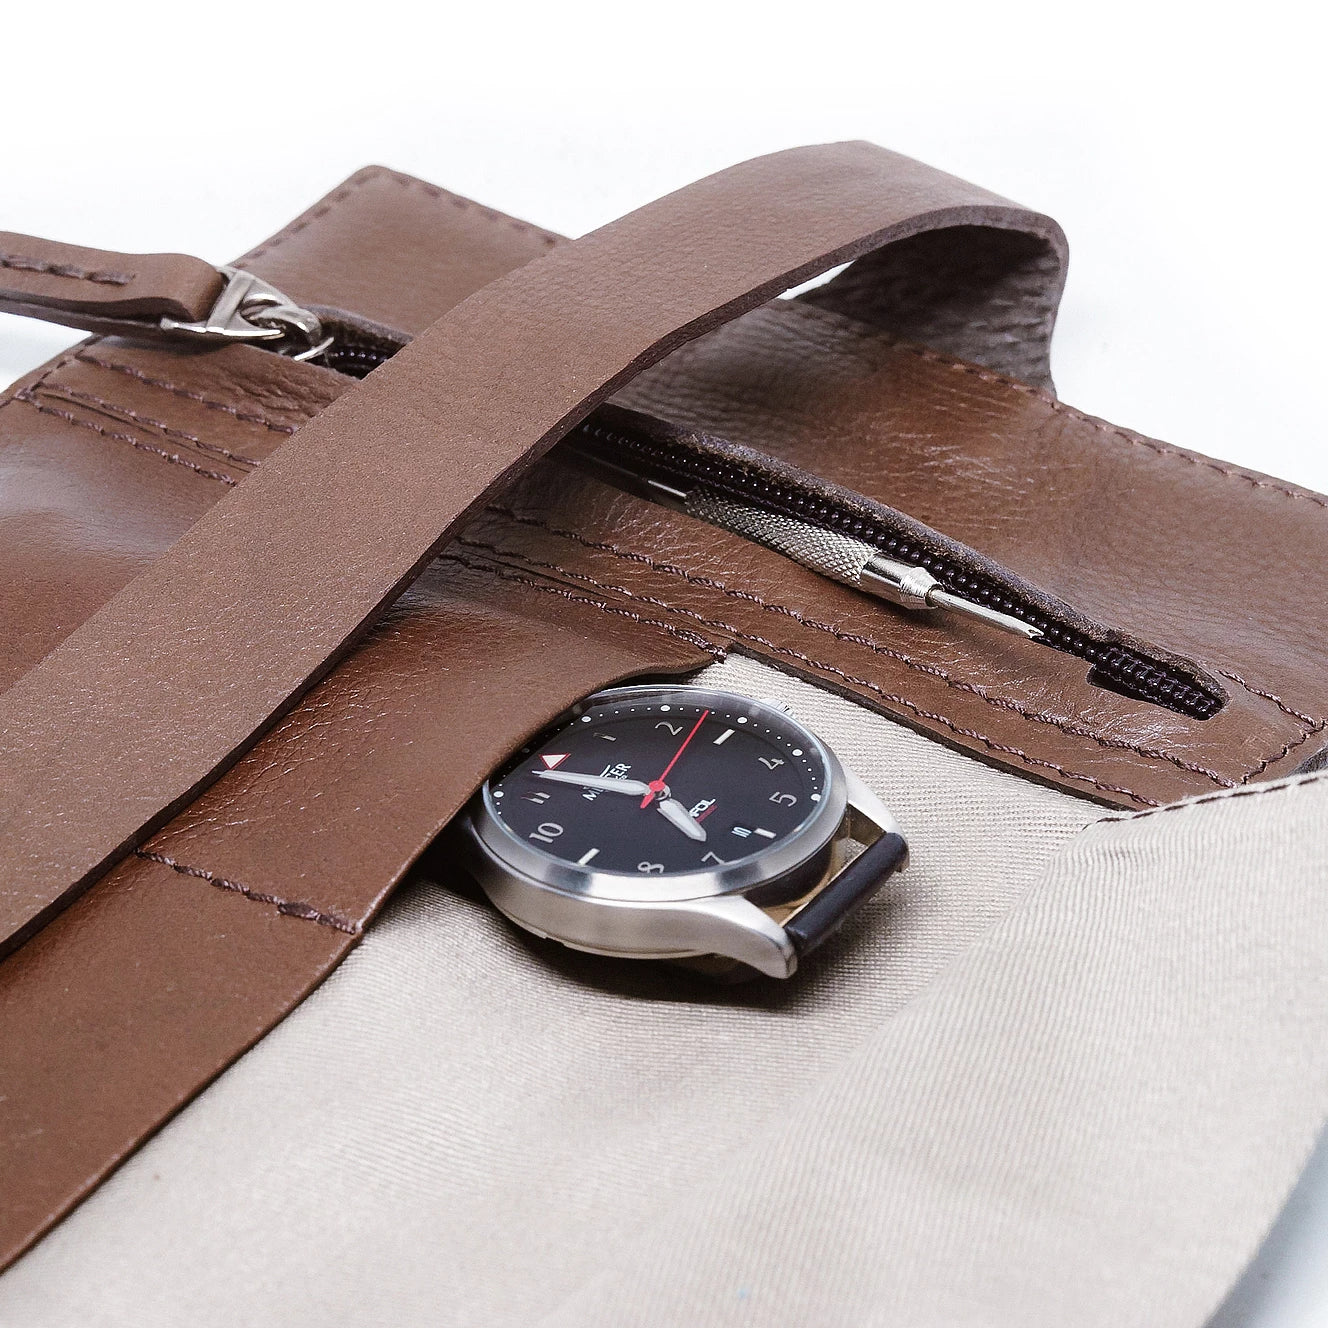 Handmade leather watch roll